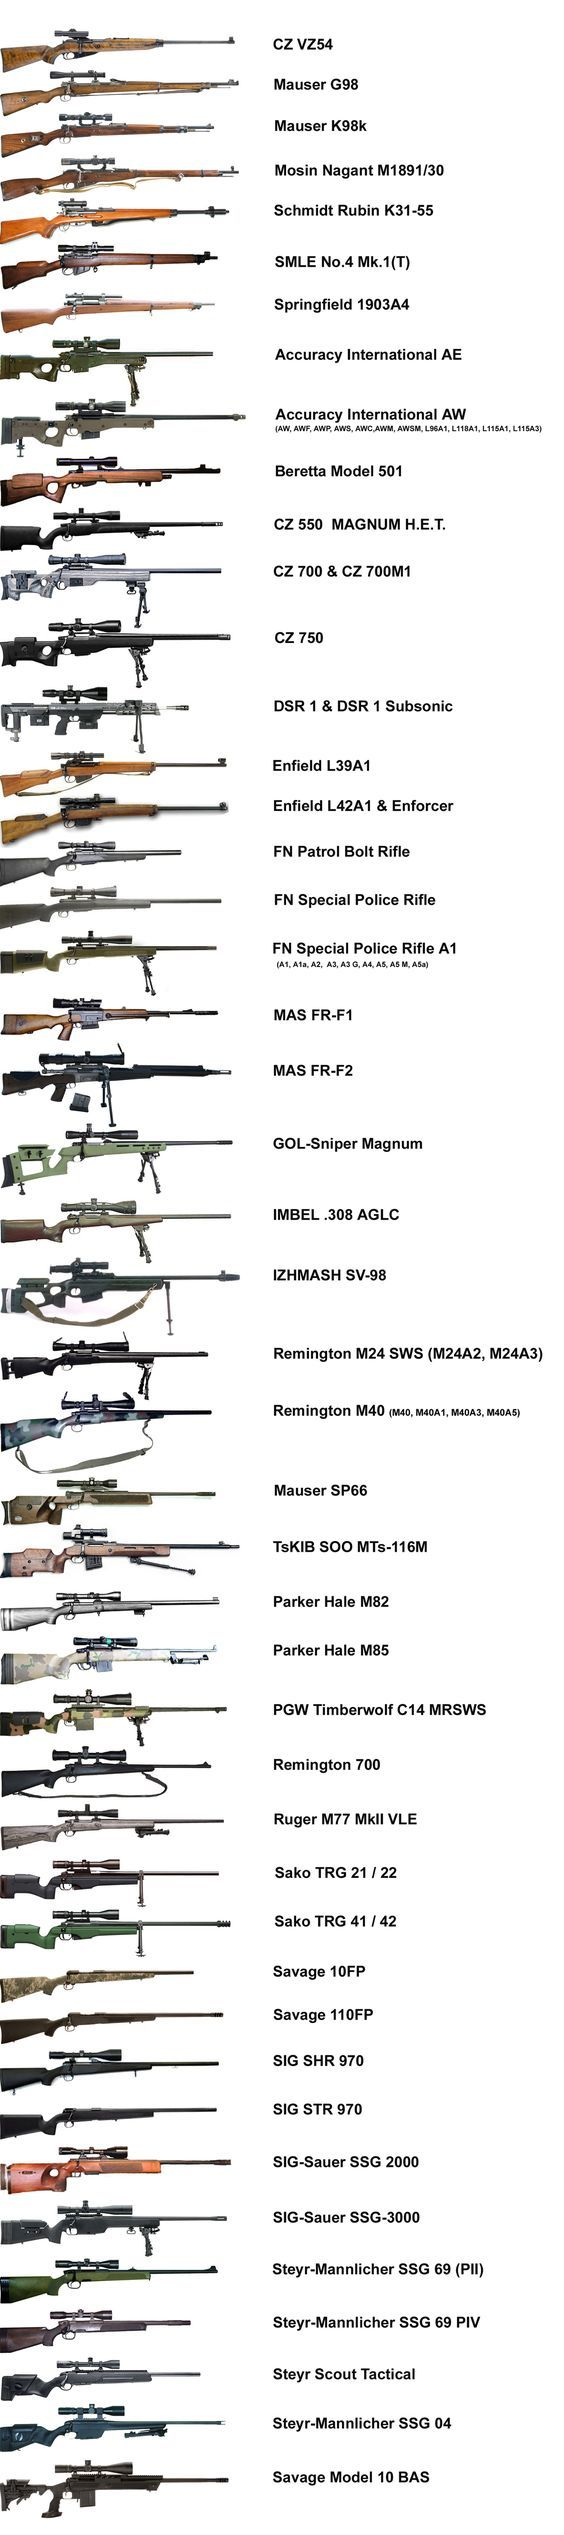 Bolt Action Sniper Rifle Collection